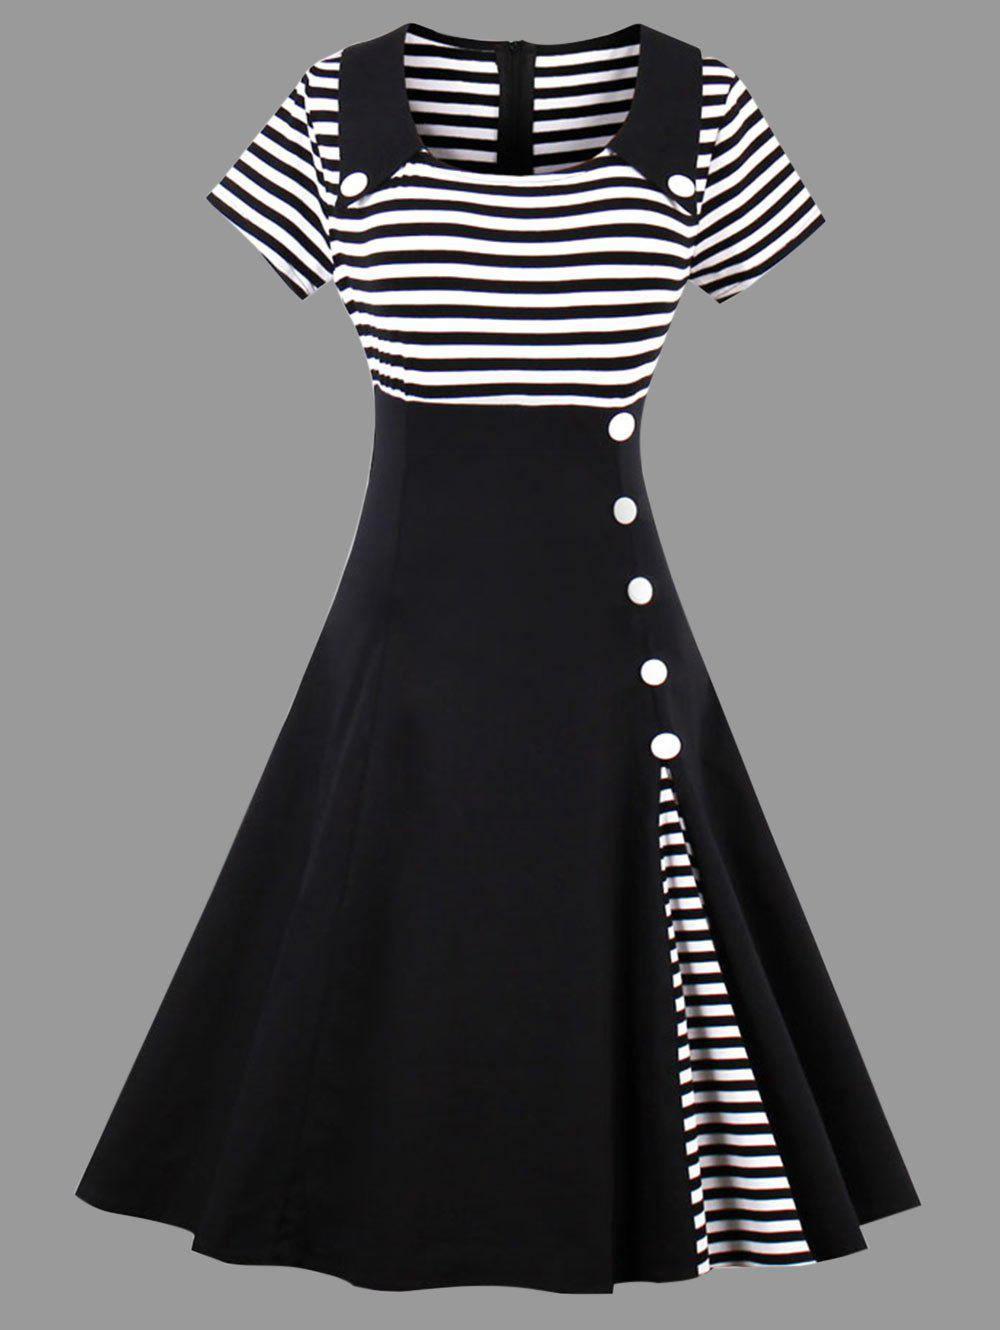 Striped Midi Plus Size Vintage Skater DressWOMEN<br><br>Size: 3XL; Color: BLACK; Style: Vintage; Material: Polyester; Silhouette: A-Line; Dresses Length: Mid-Calf; Neckline: Square Collar; Sleeve Length: Short Sleeves; Pattern Type: Striped; With Belt: No; Season: Summer; Weight: 0.4700kg; Package Contents: 1 x Dress;